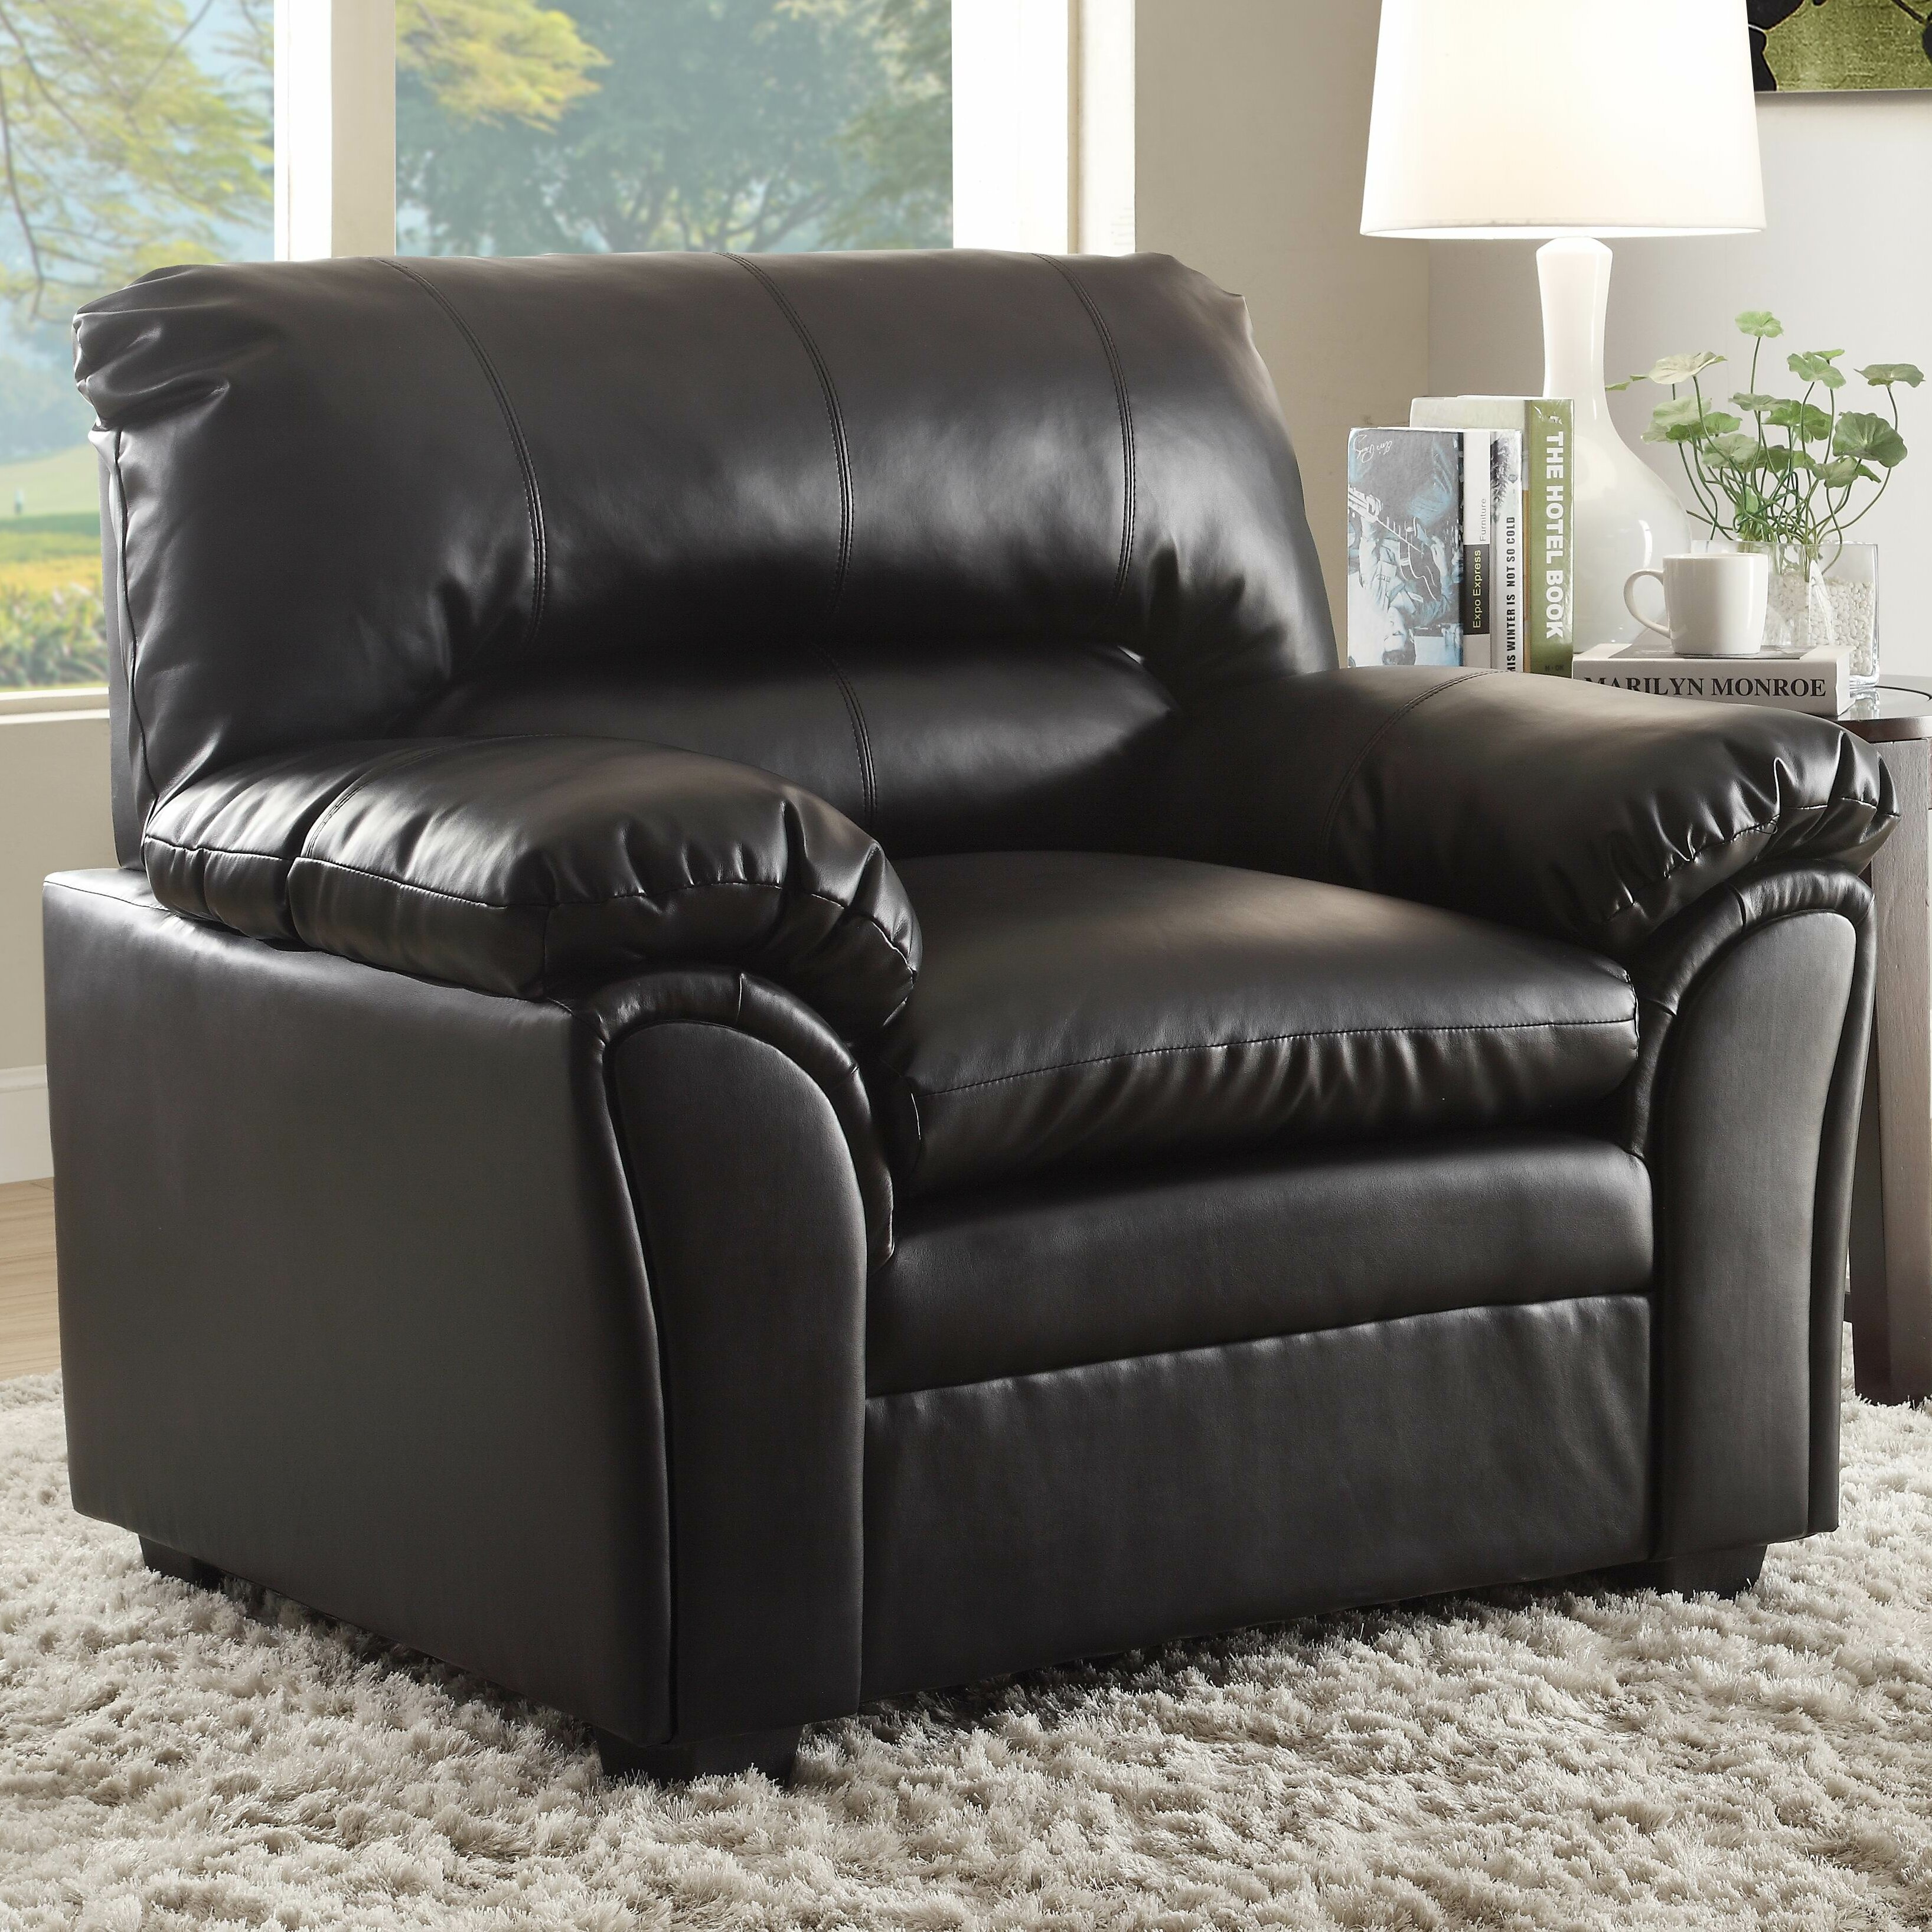 Woodhaven Living Room Furniture Woodhaven Hill Talon Living Room Collection Reviews Wayfair